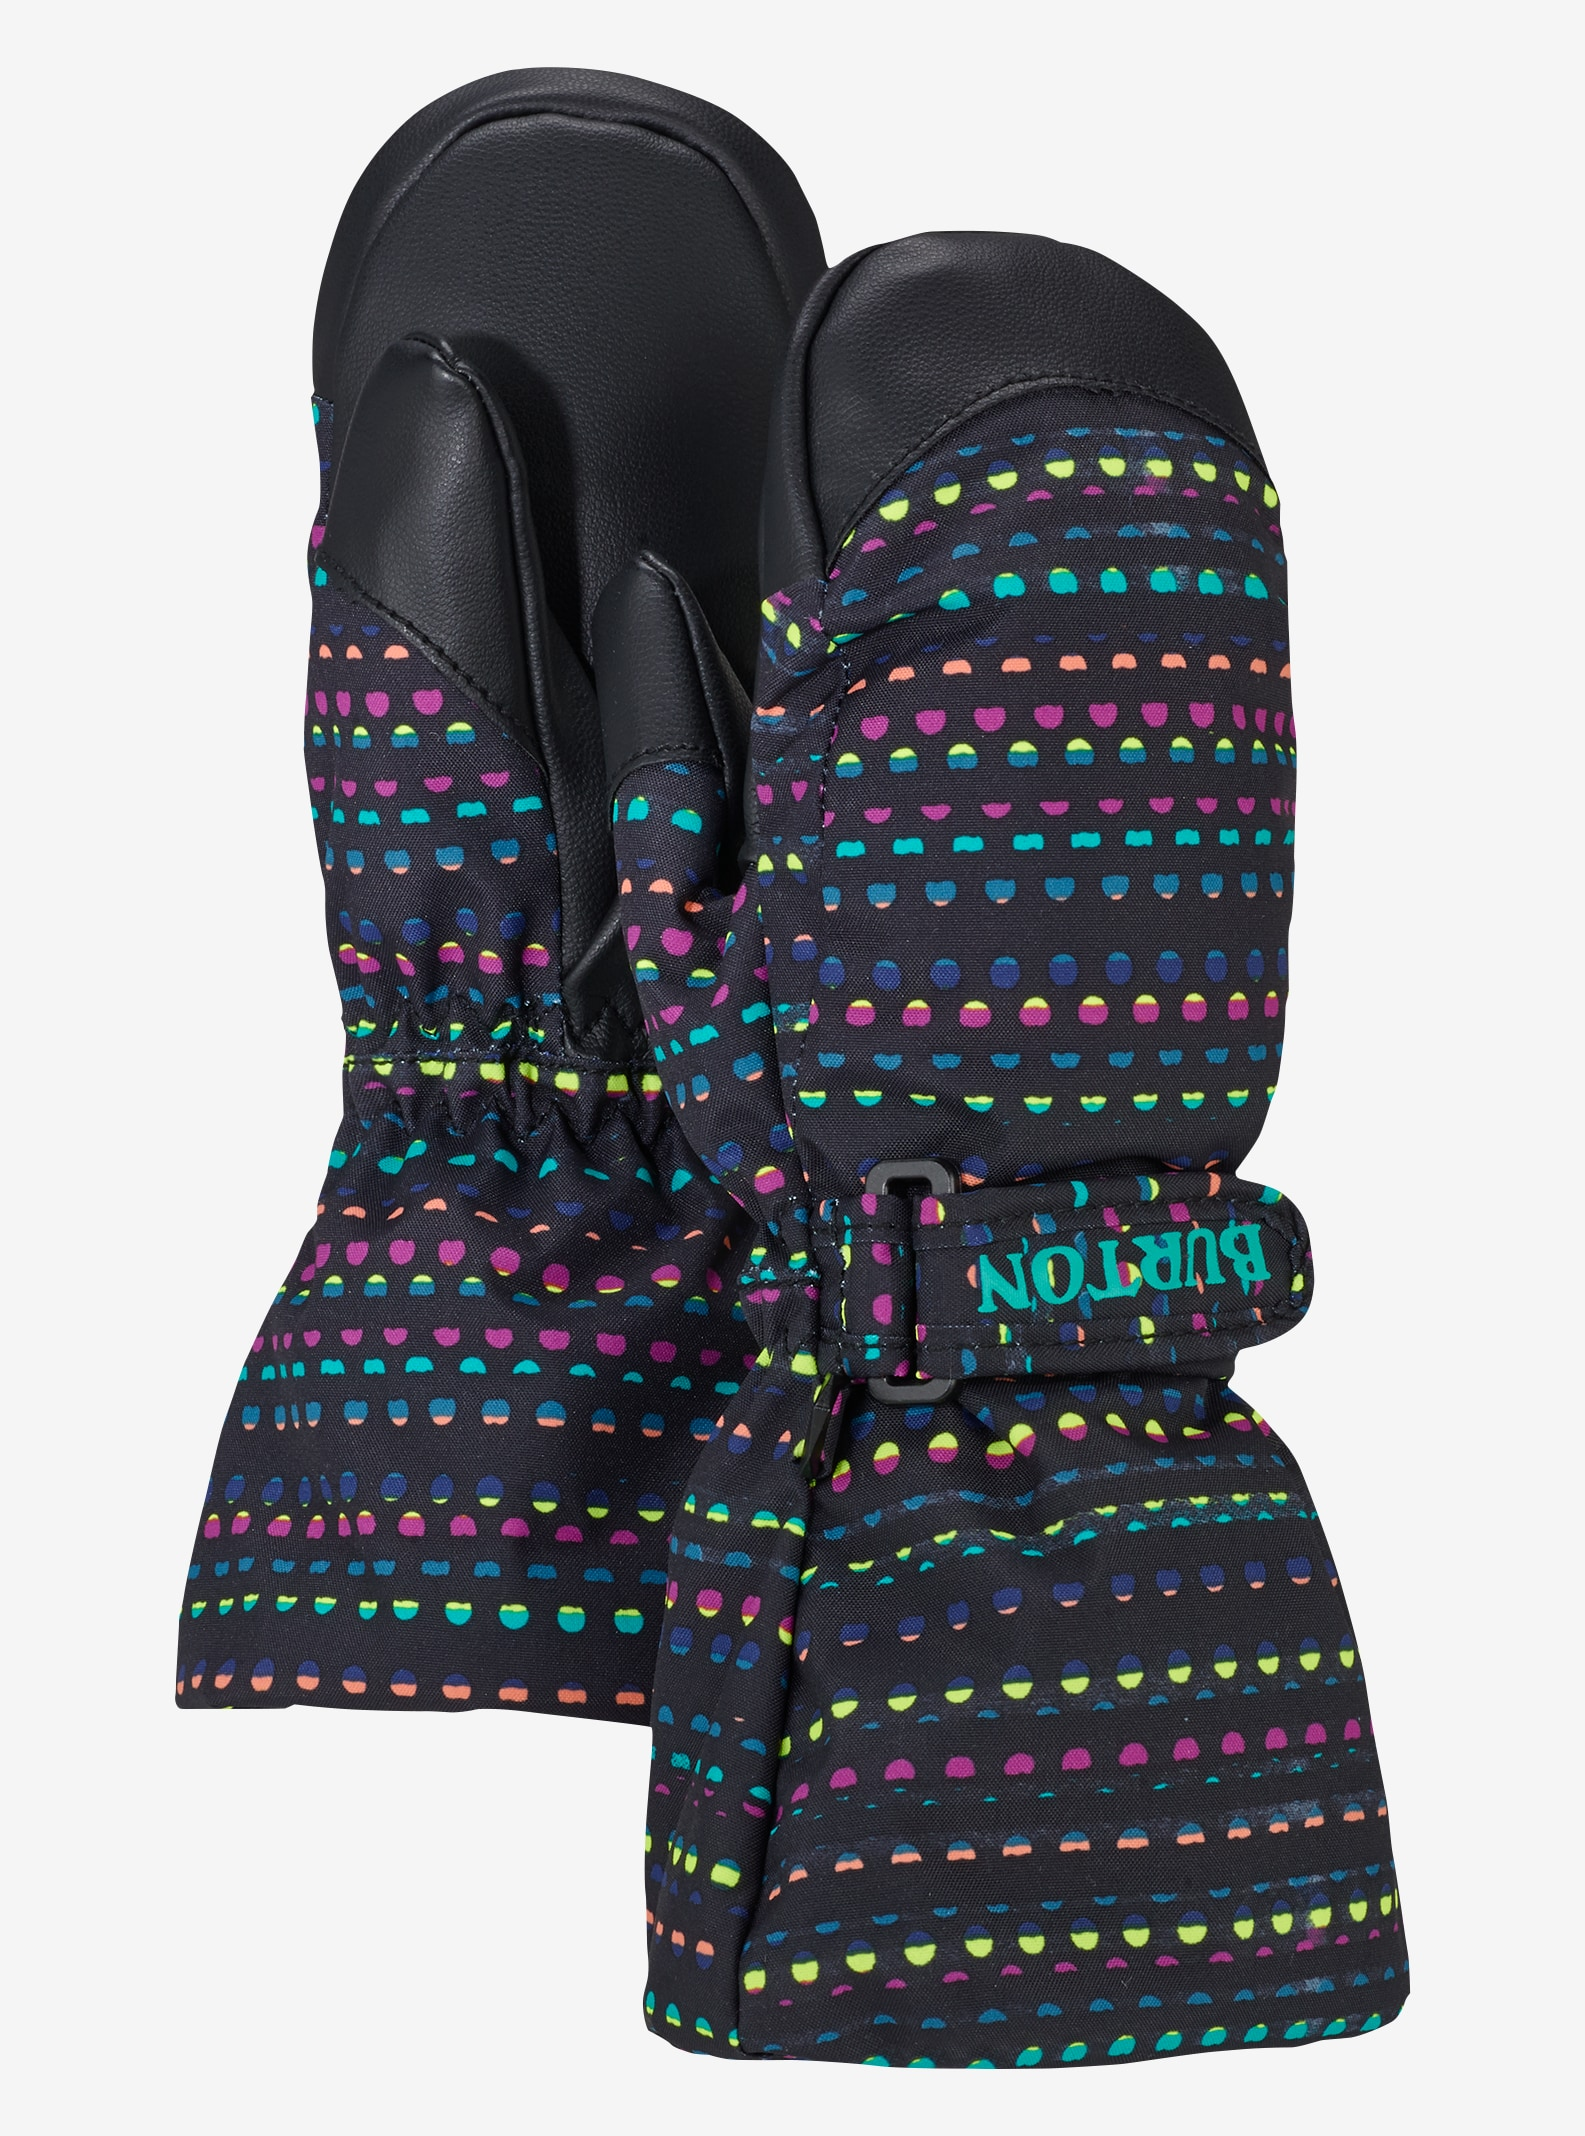 Kids' Burton Mini Heater Mitt shown in Candy Dots